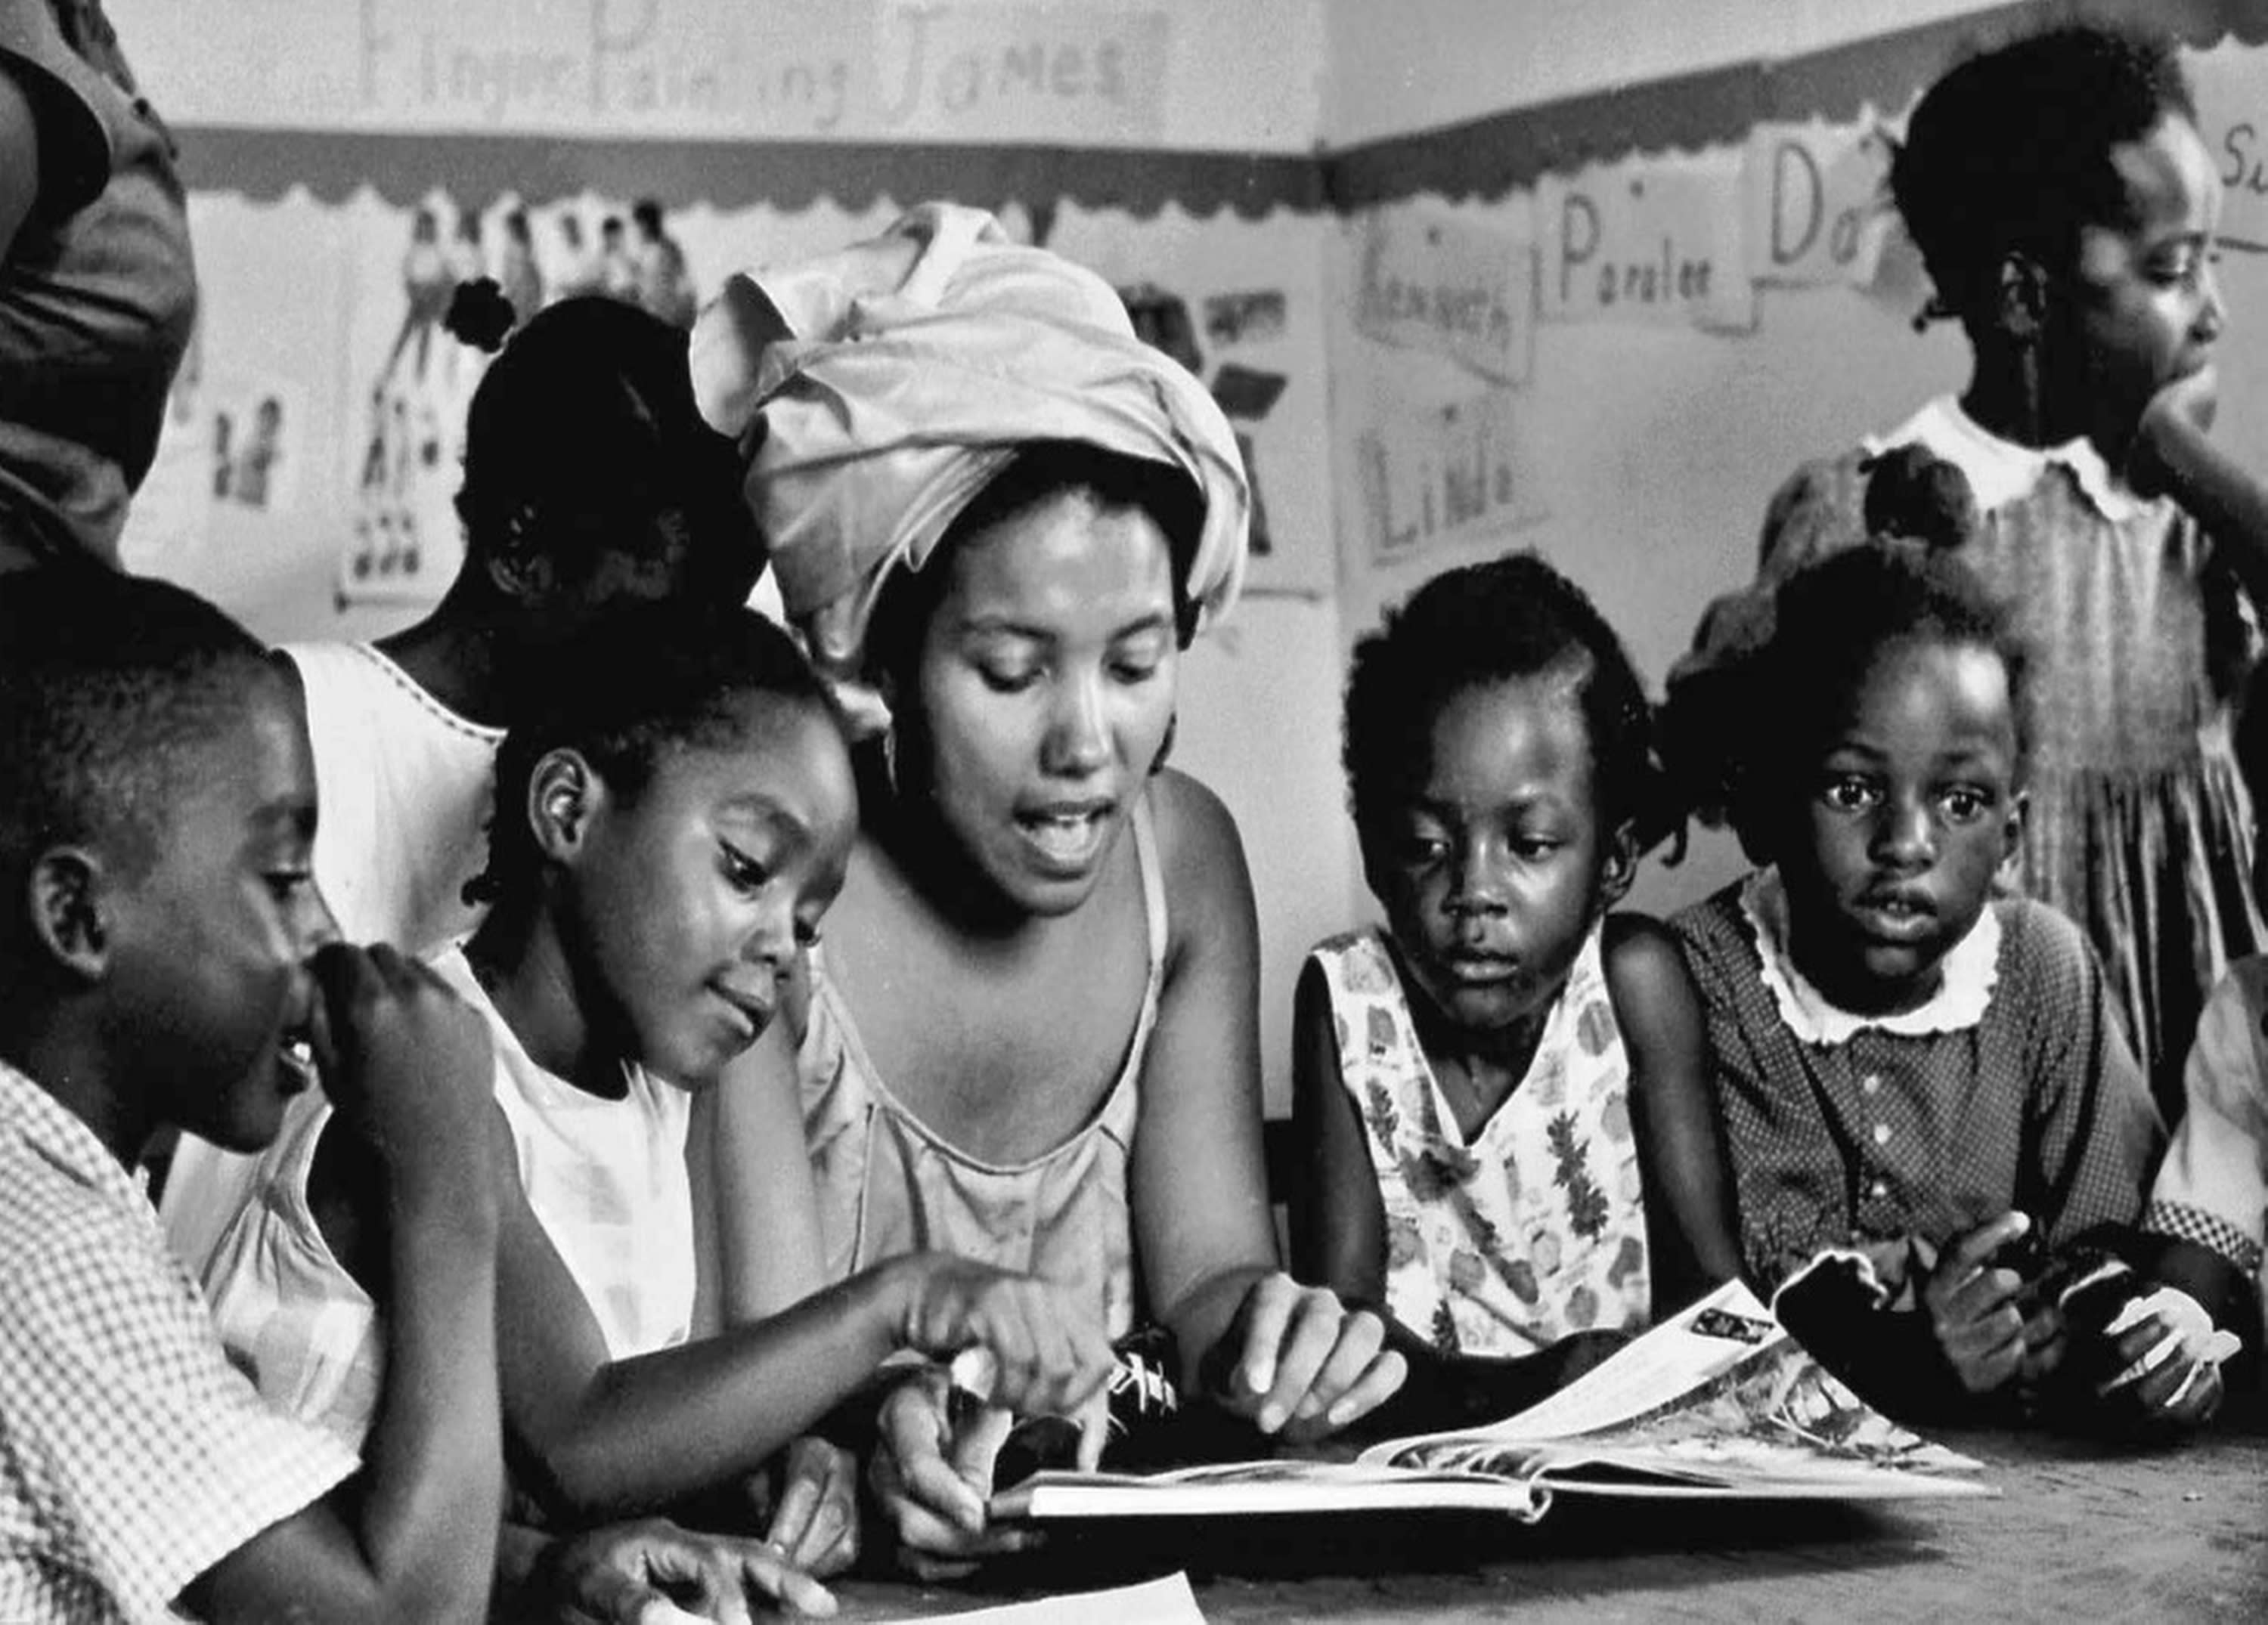 This 1966 photo provided by Maria Varela shows a member of the Student Nonviolent Coordinating Committee, SNCC, working with students in a Head Start program in Canton, Miss. The photo was taken by Varela, then a member of SNCC, and was one of the few Latinos involved in the black civil rights movement. (AP Photo/Maria Varela, File)